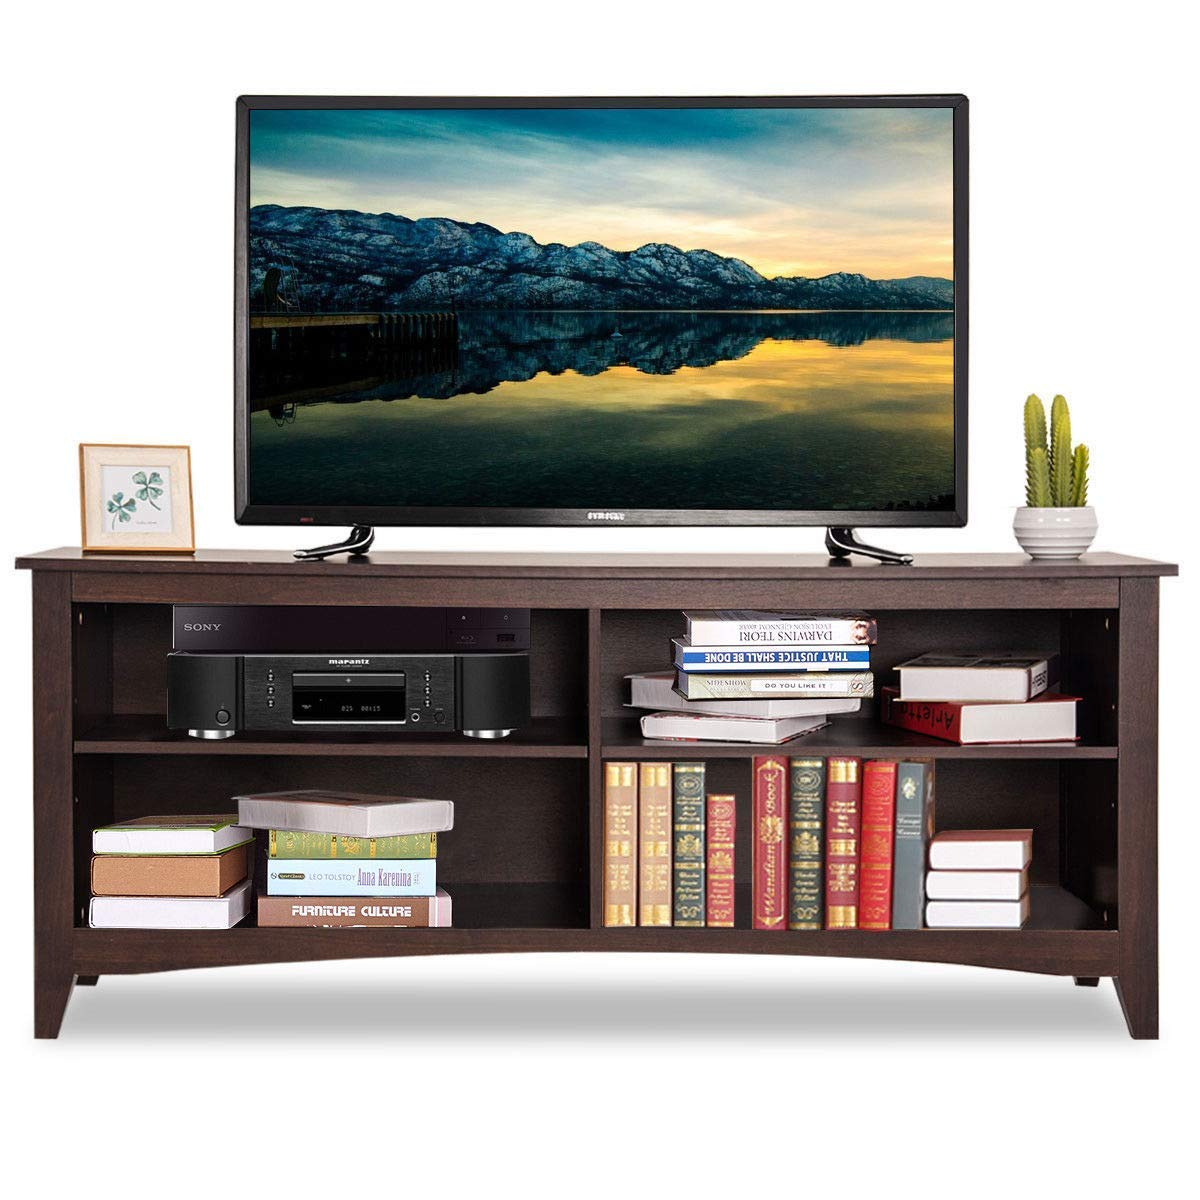 Tangkula TV Stand, Modern Wood Large Wide Entertainment Center for TV up to 60'', Living Room Media Console Stand with 4 Open Storage Shelves, Espresso by Tangkula